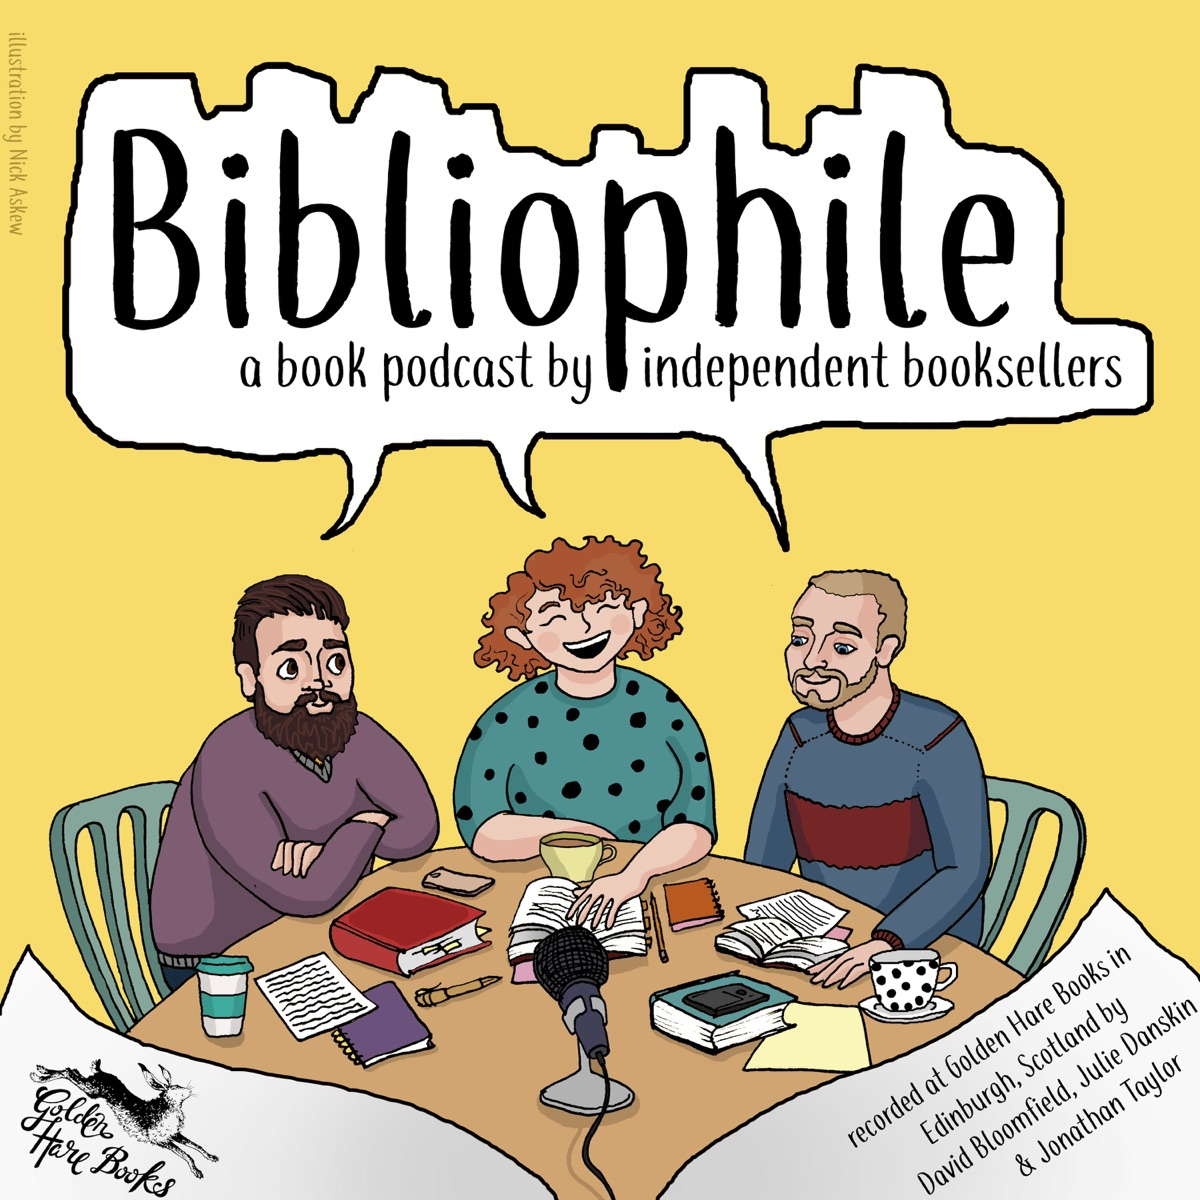 Bibliophile | Book talk and recommendations from independent booksellers